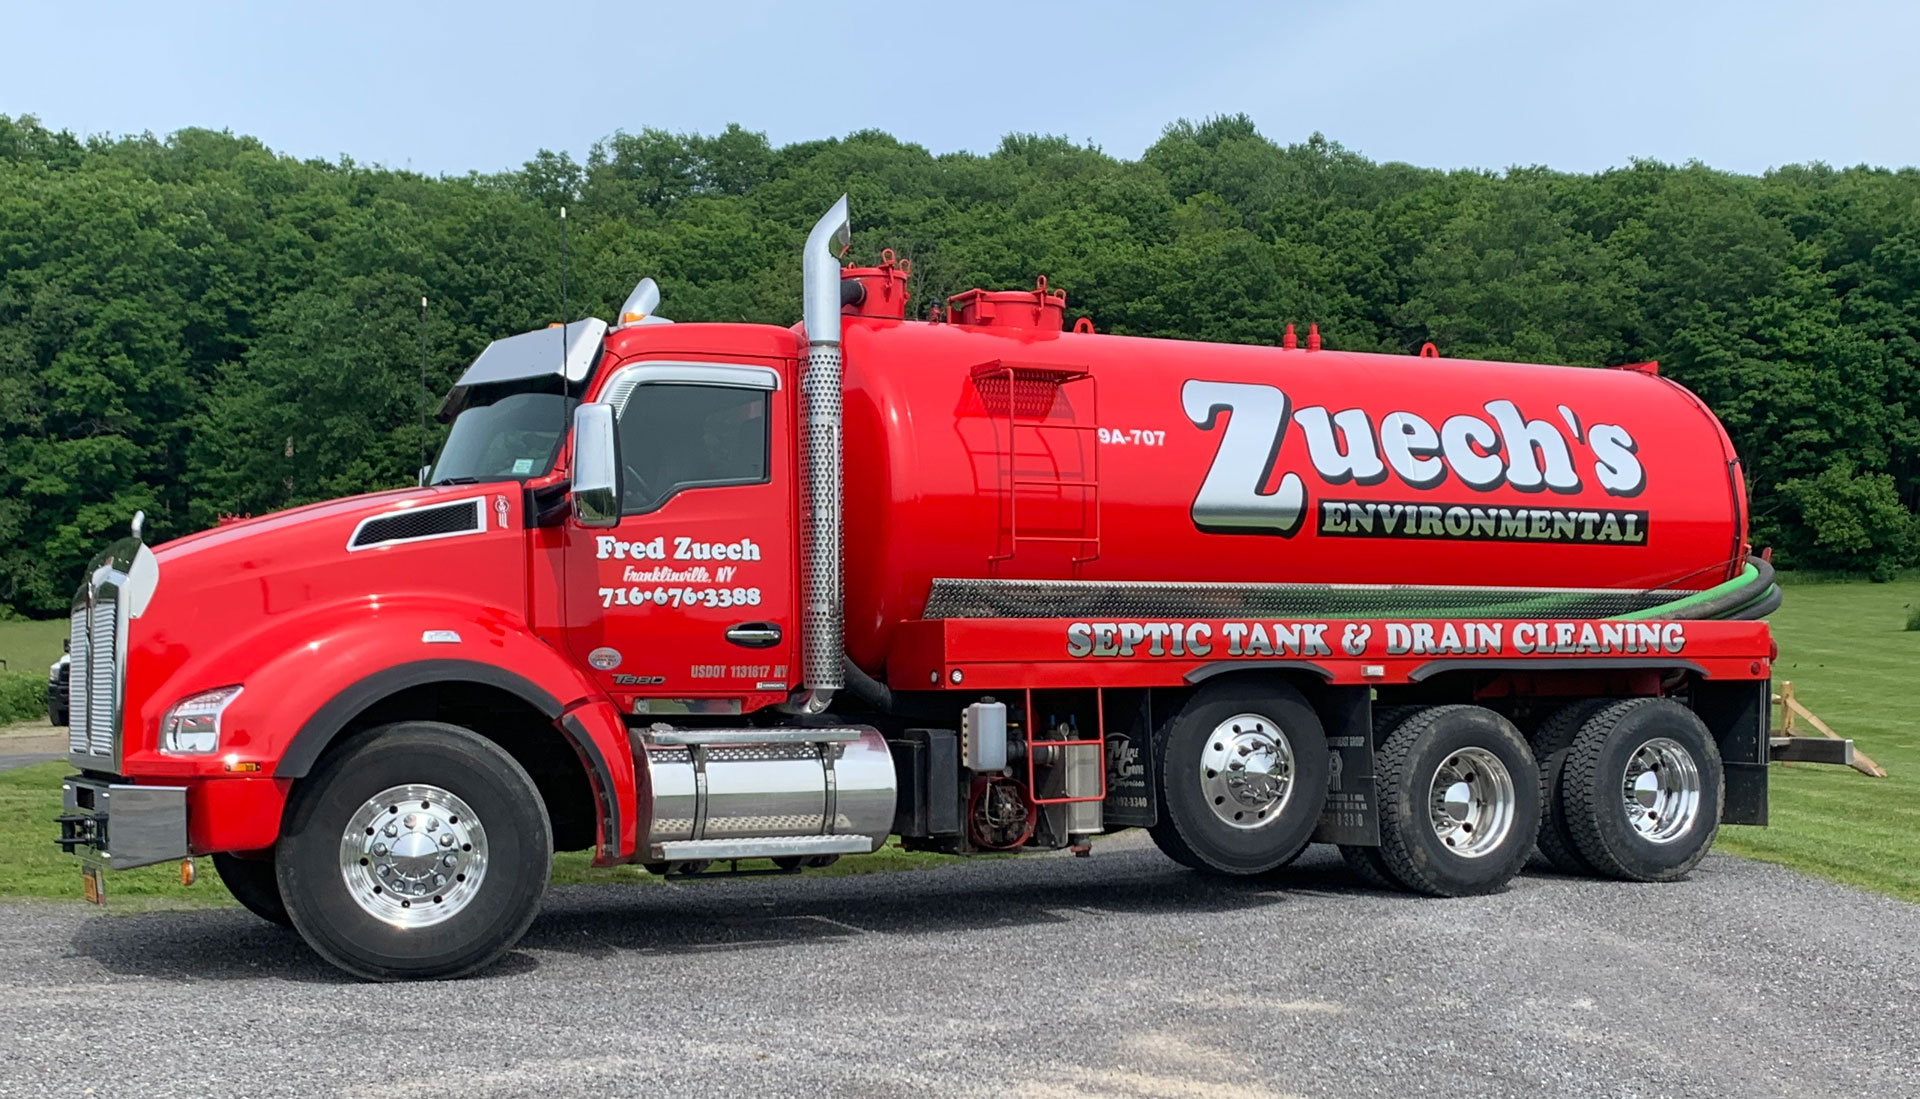 Zuech's Environmental Services Inc.